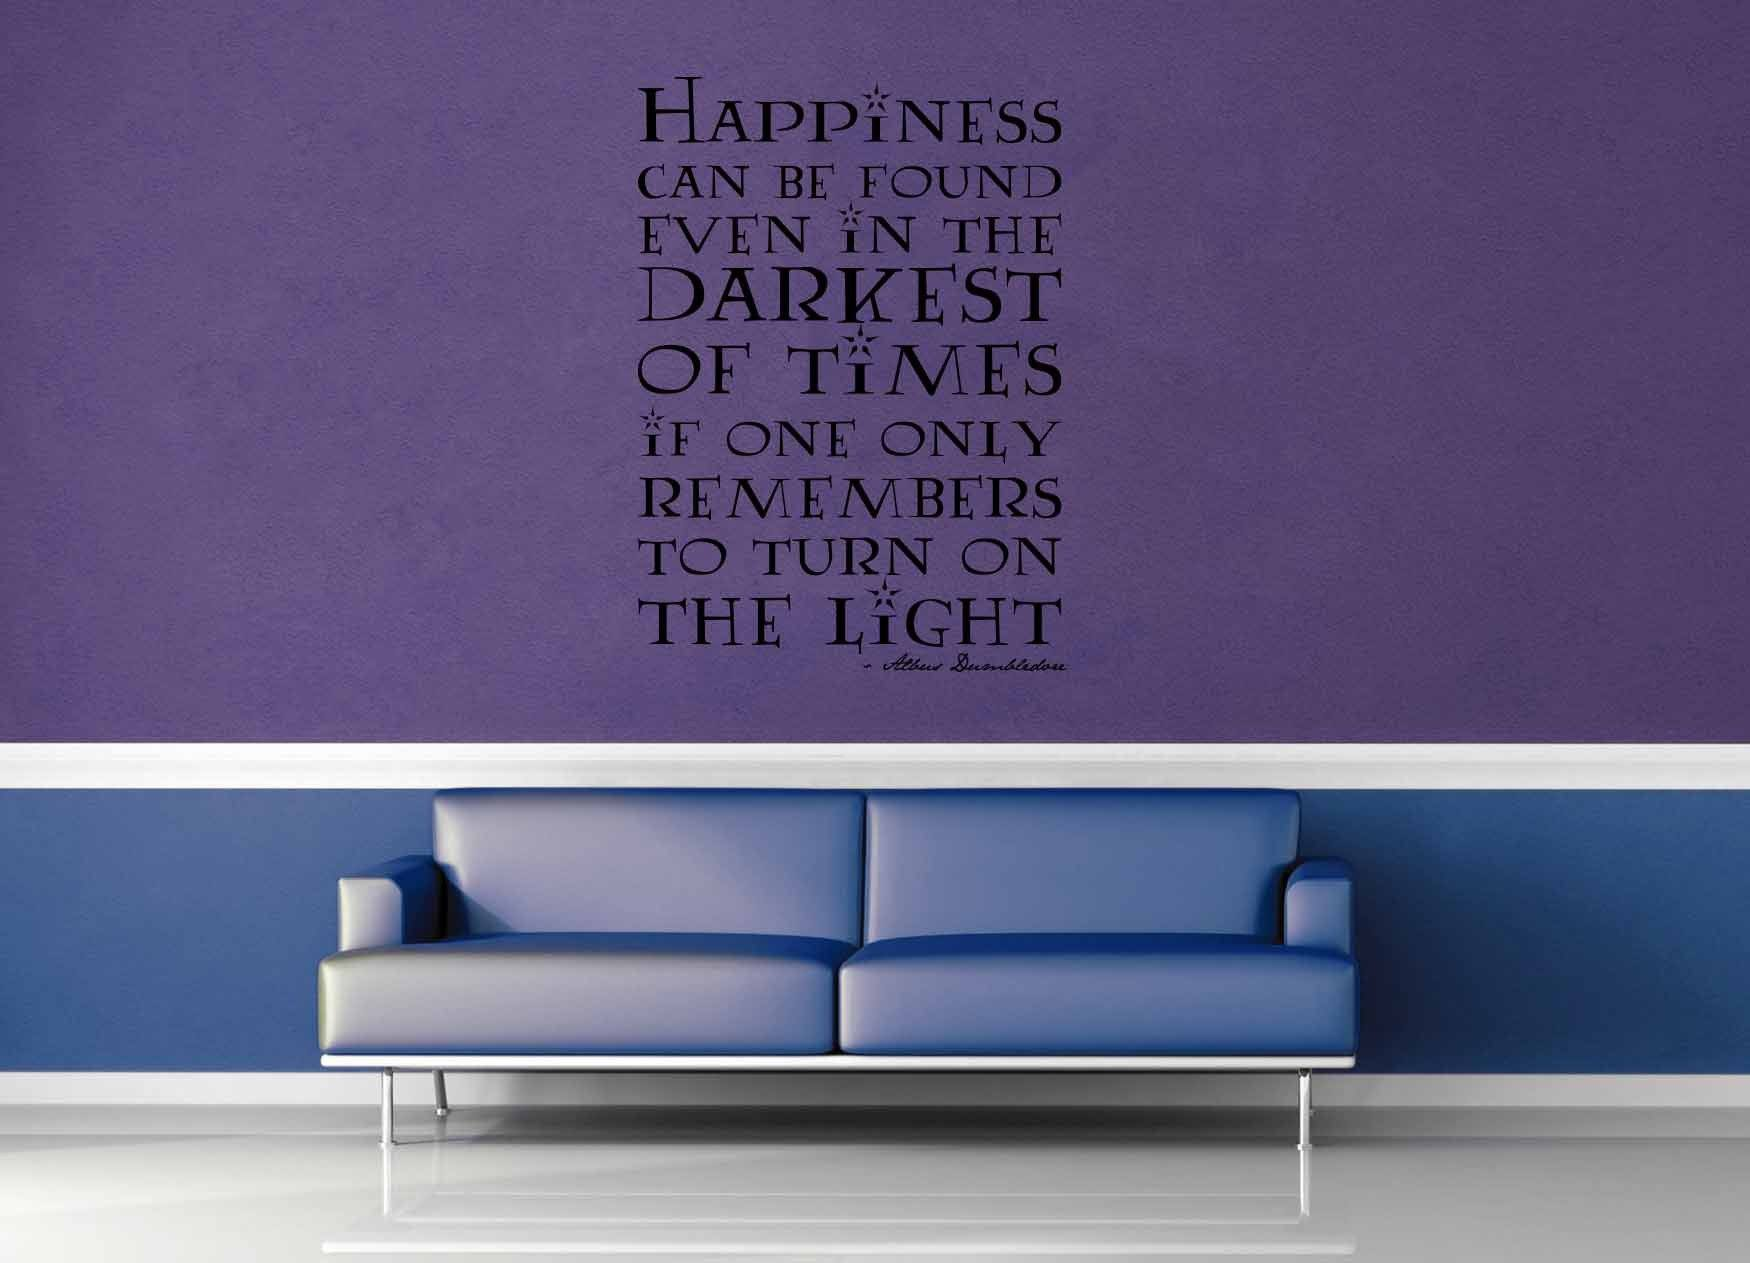 Happiness Can Be Found - Harry Potter Quote - Wall Decal - No 3 & Happiness Can Be Found - Harry Potter Quote - Wall Decal - No 3 ...